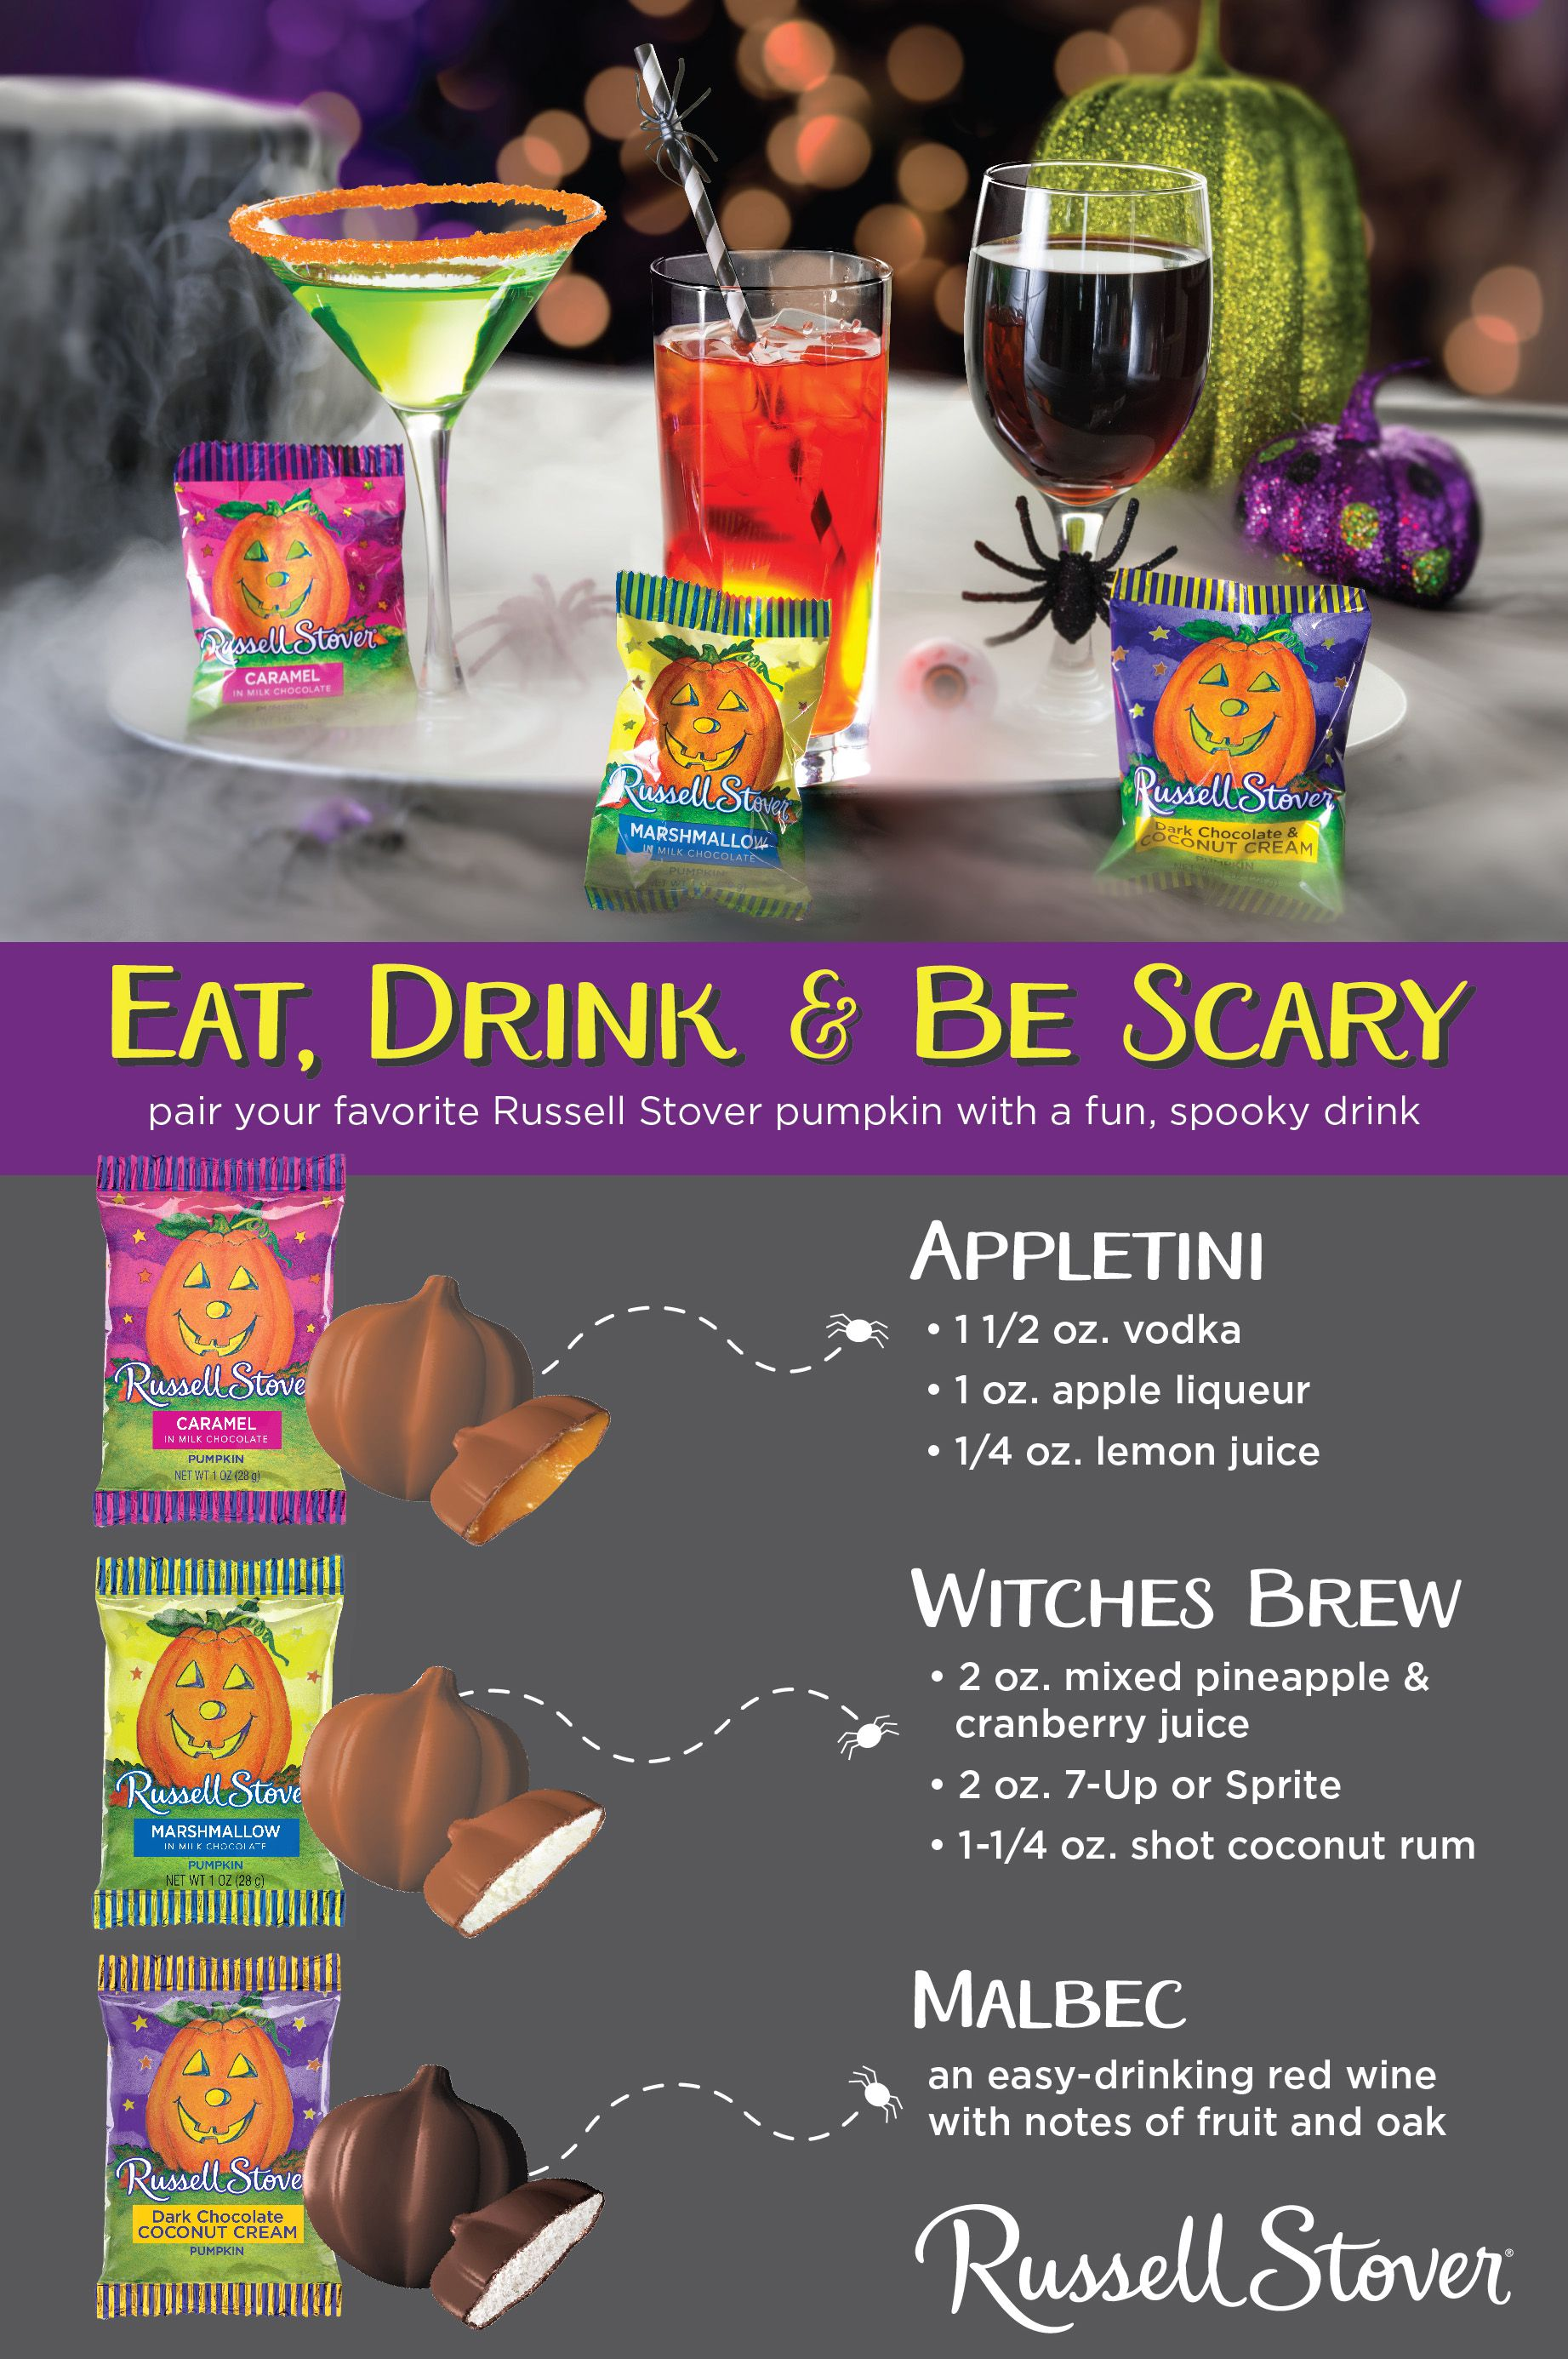 try out one of these spooky russell stover drink pairings at your